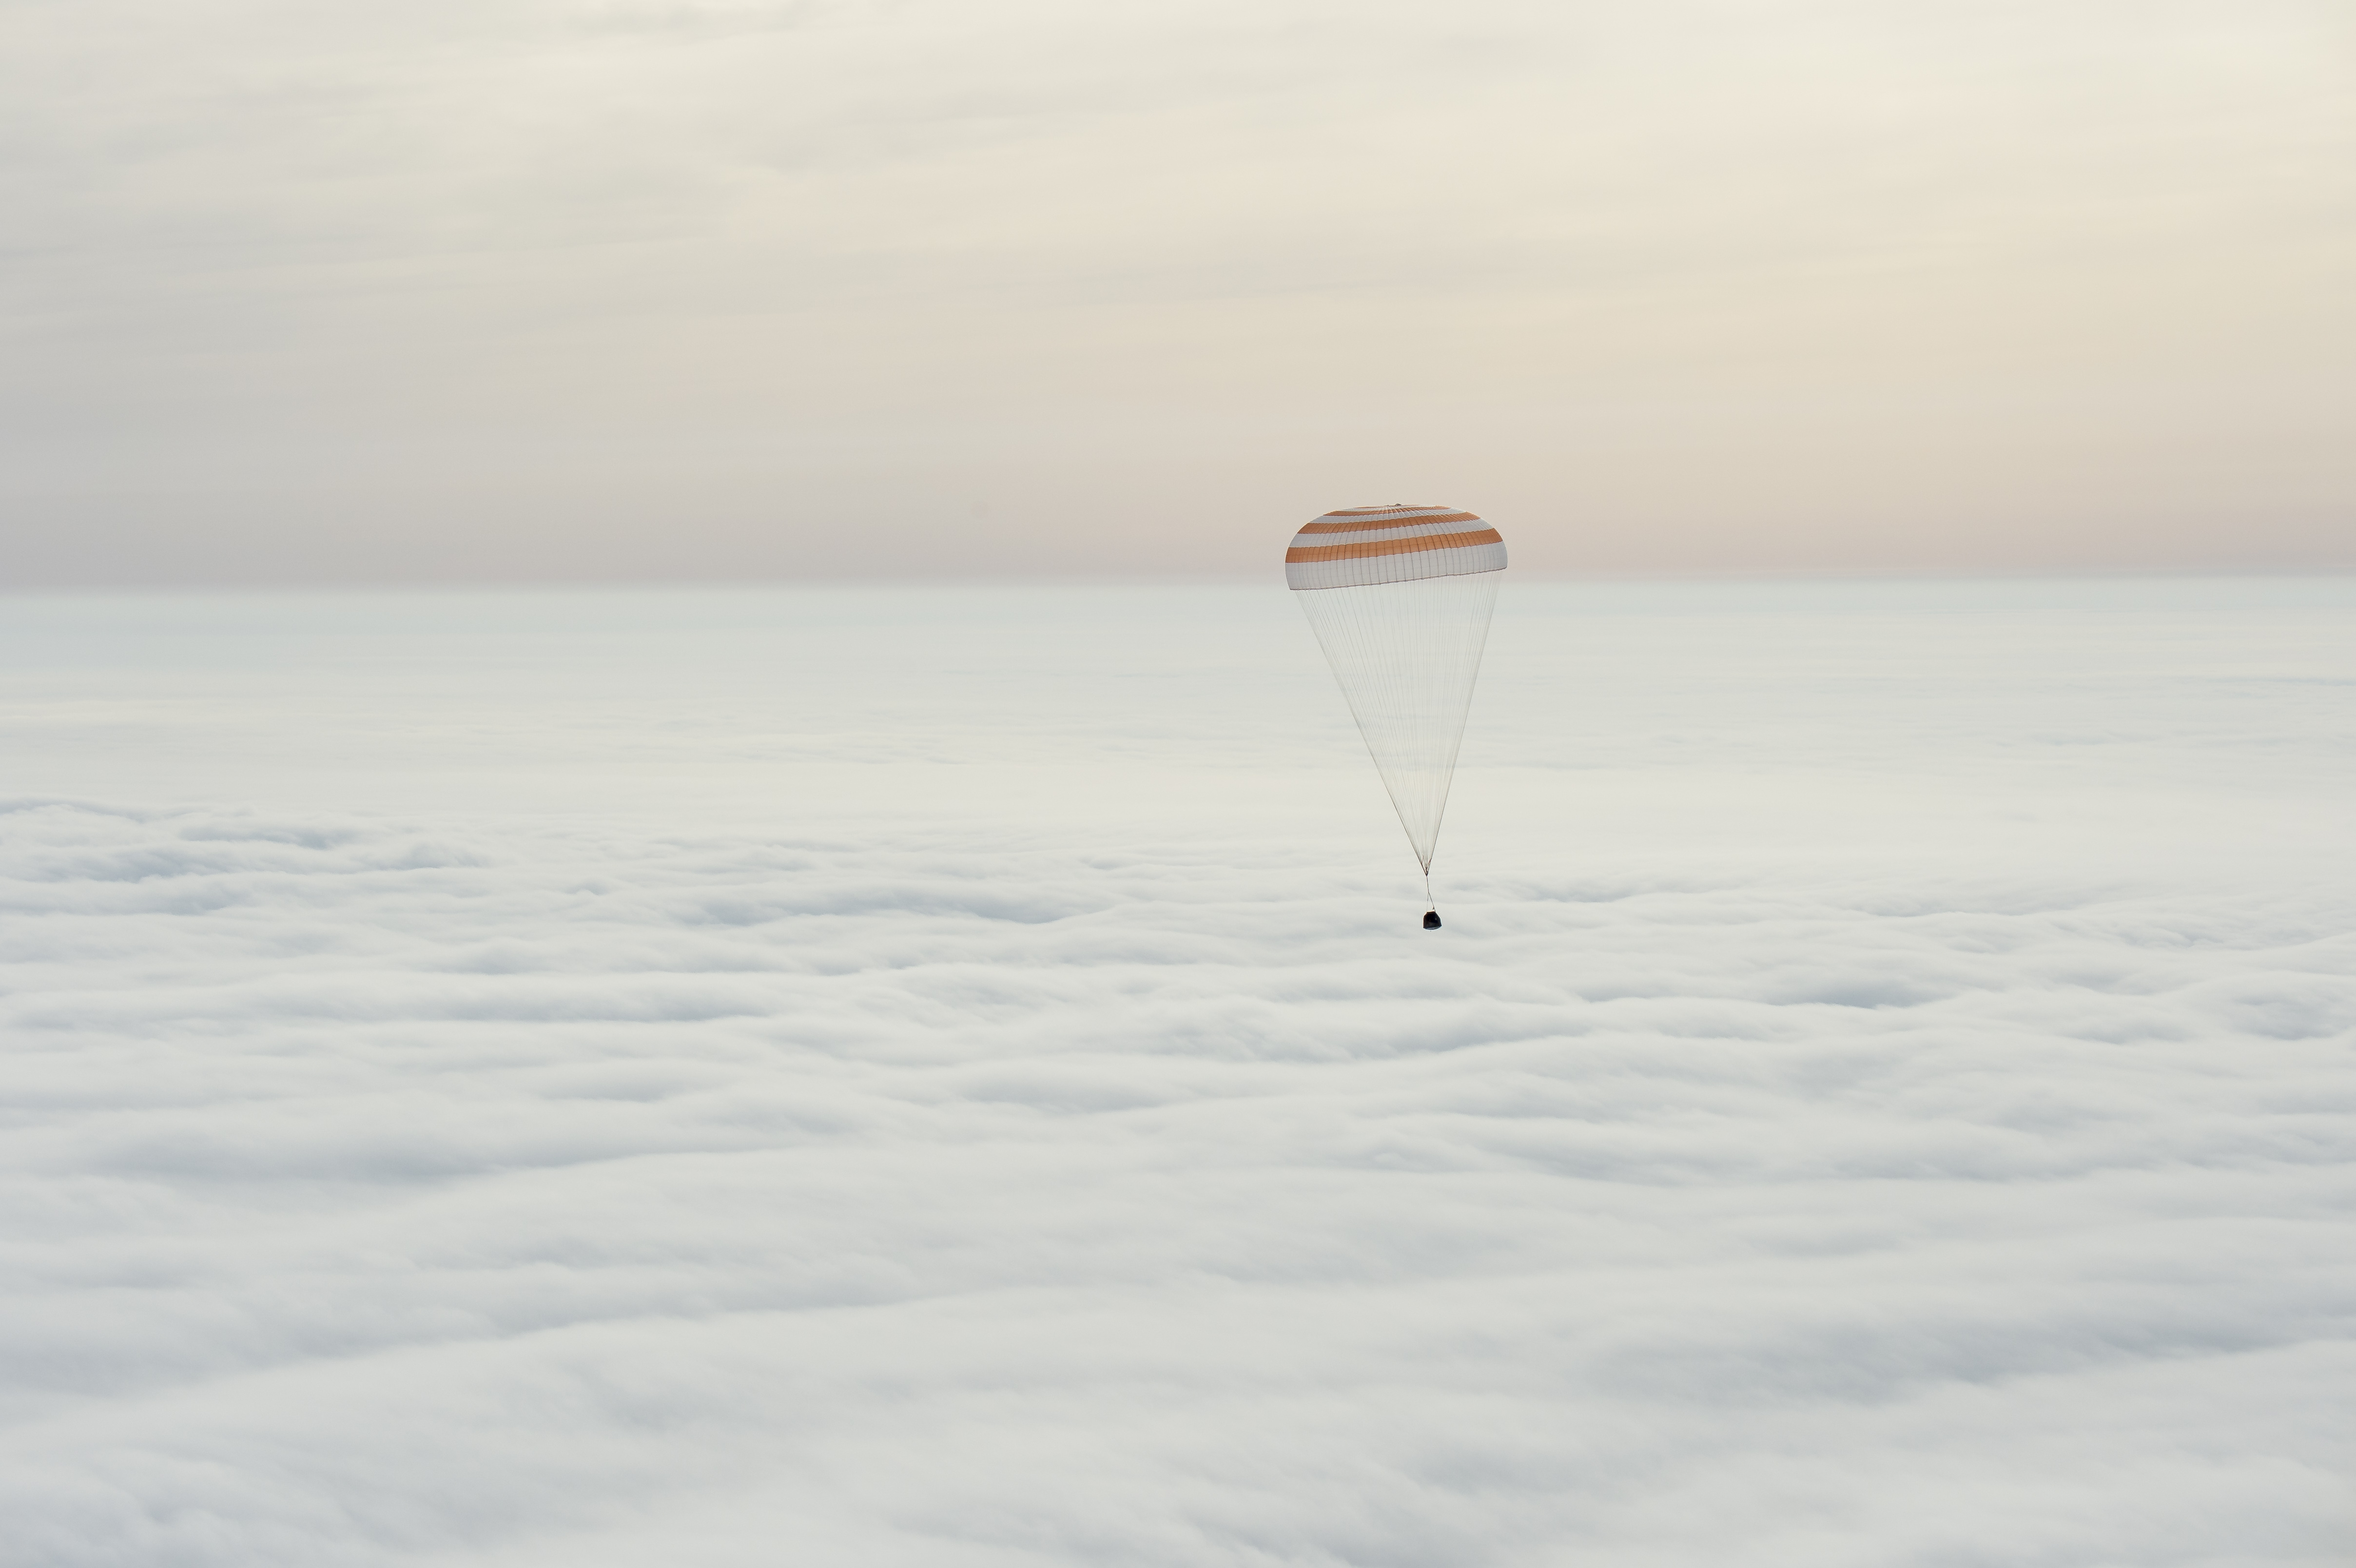 astronaut cosmonaut return after 340 day stay on space station